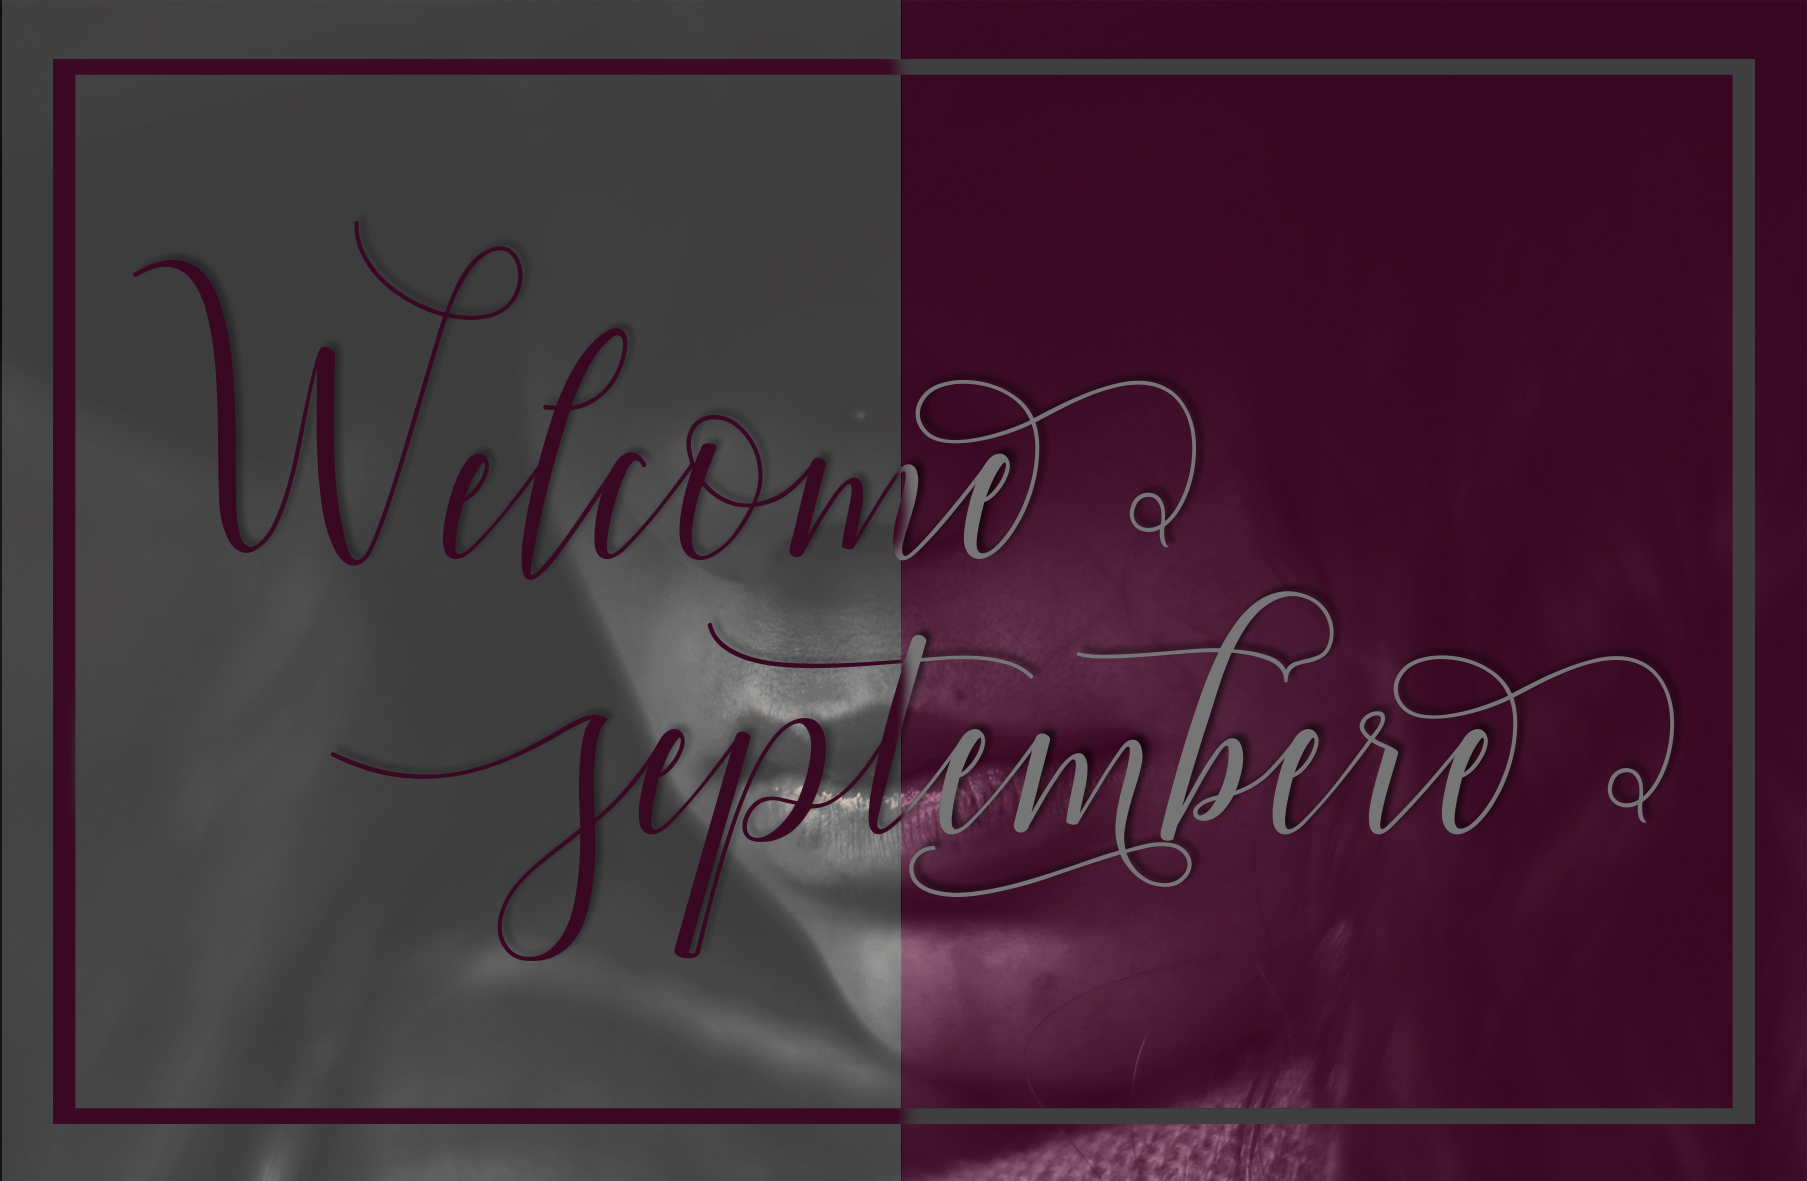 Hello Violetta Font By Bexx Type Image 6